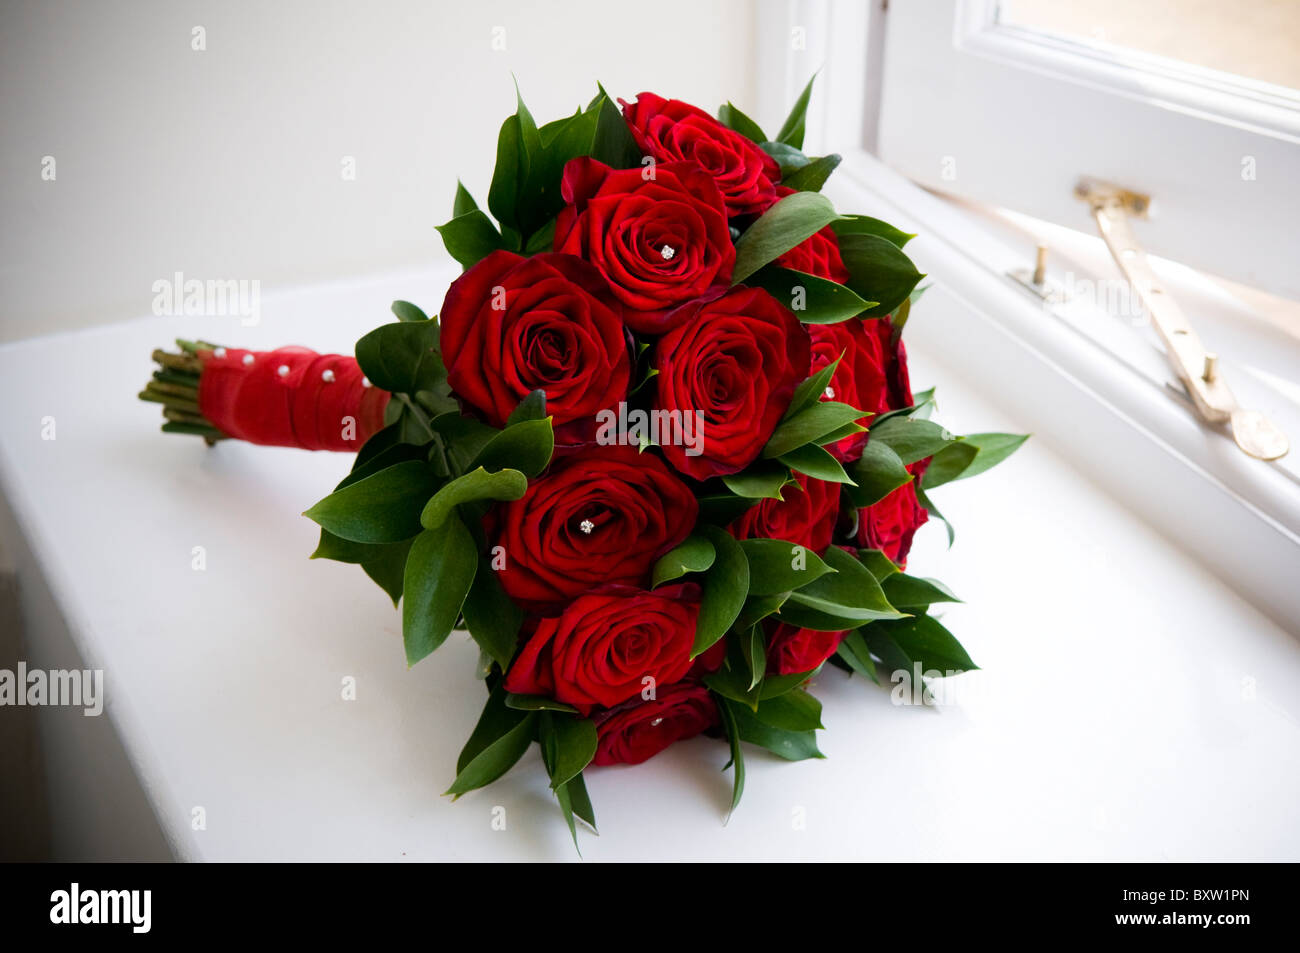 Red Roses Stock Photos Red Roses Stock Images Alamy